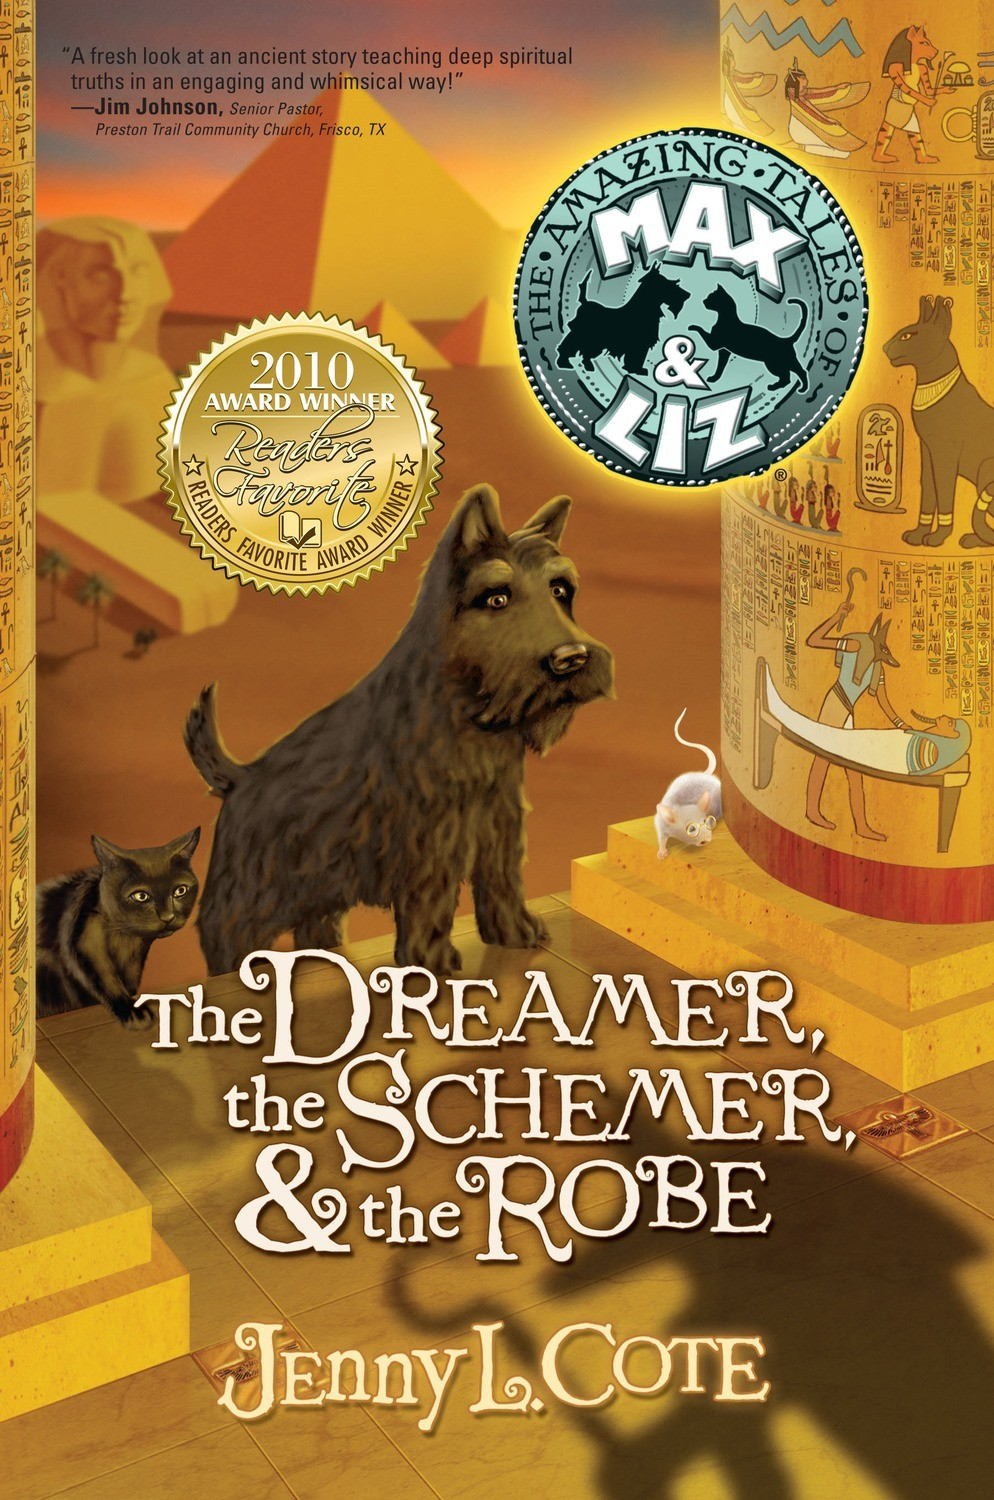 The Dreamer, the Schemer, and the Robe (Book Two) Personalized by Jenny